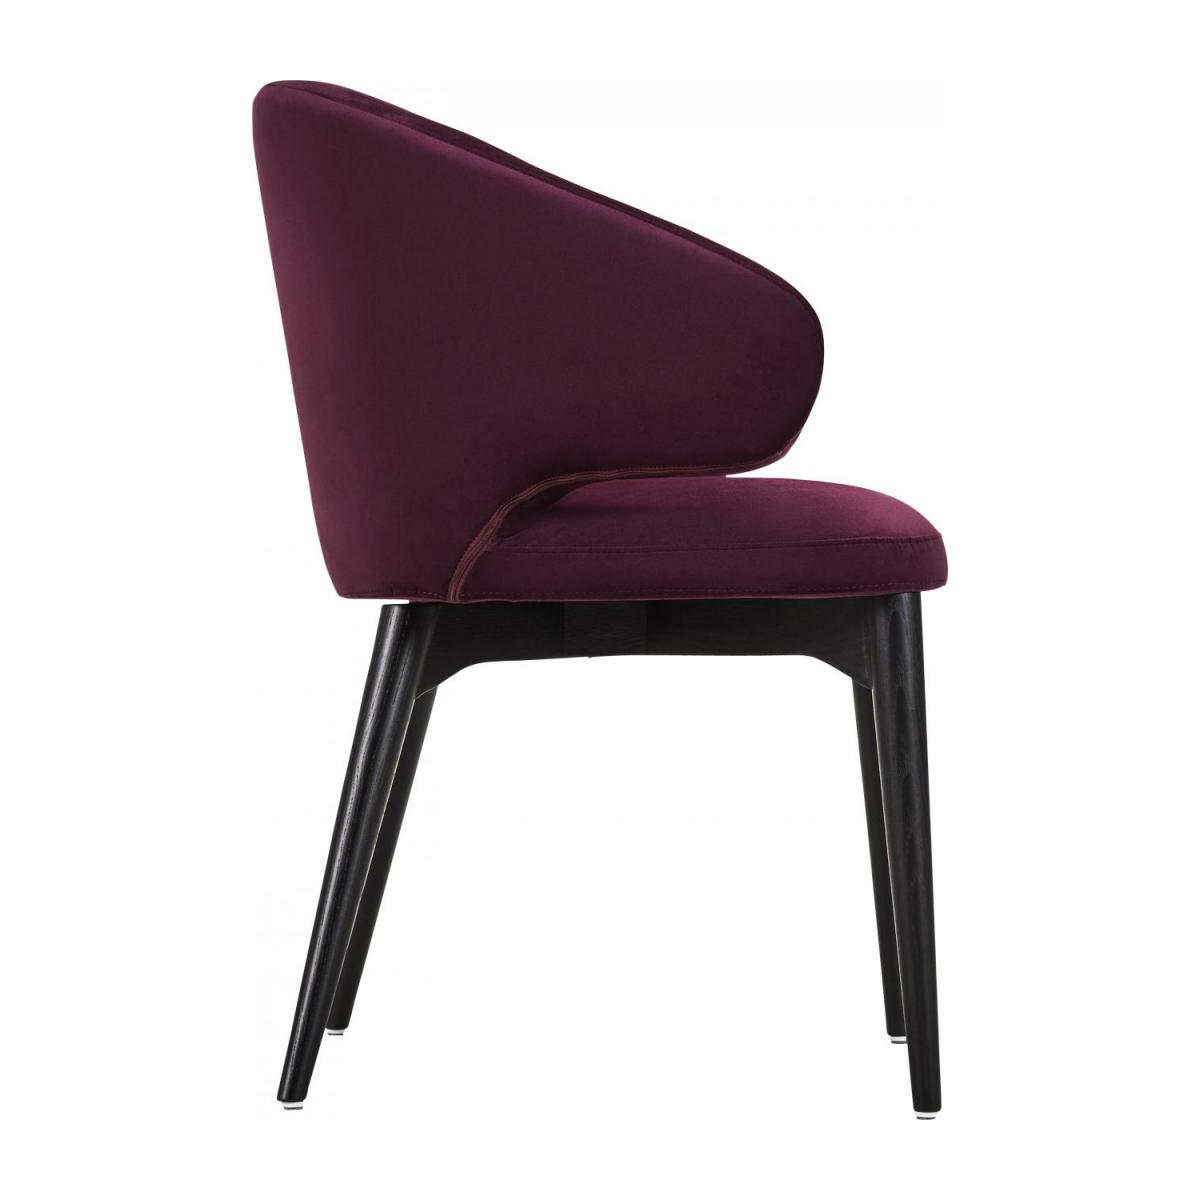 Chaise en velours - Bordeaux n°4